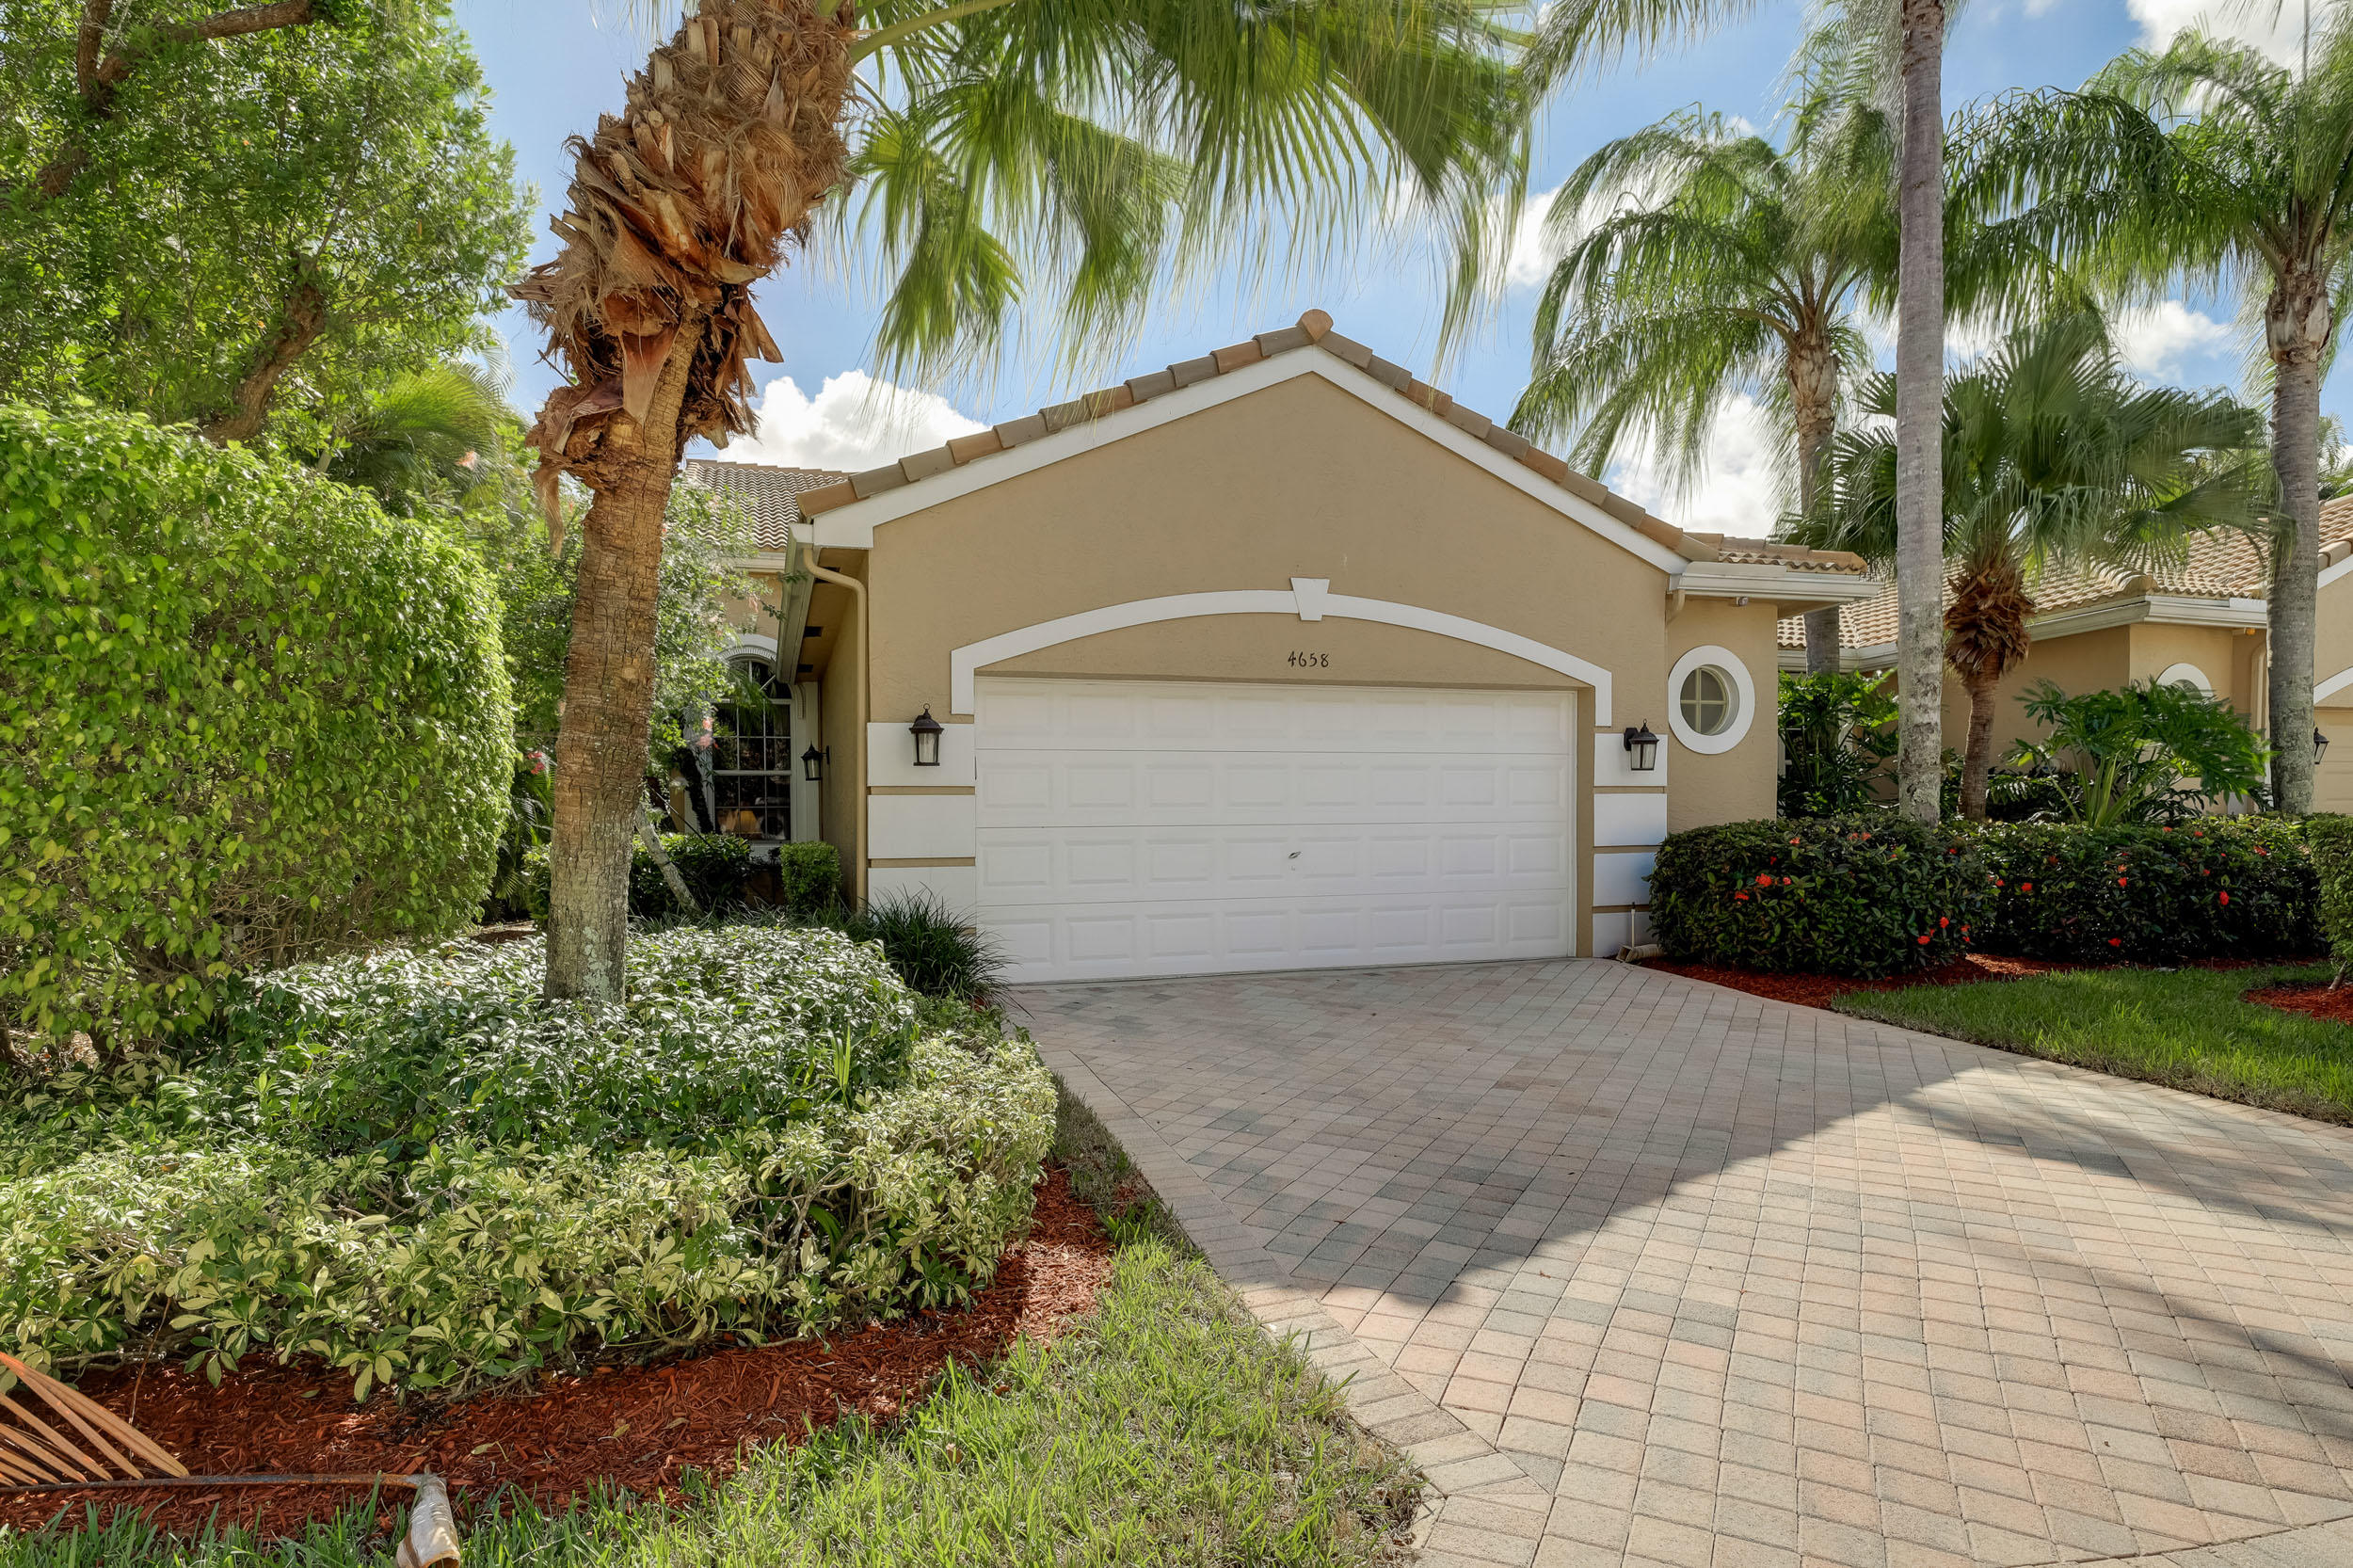 Home for sale in Wycliffe - Cambridge Lake Worth Florida